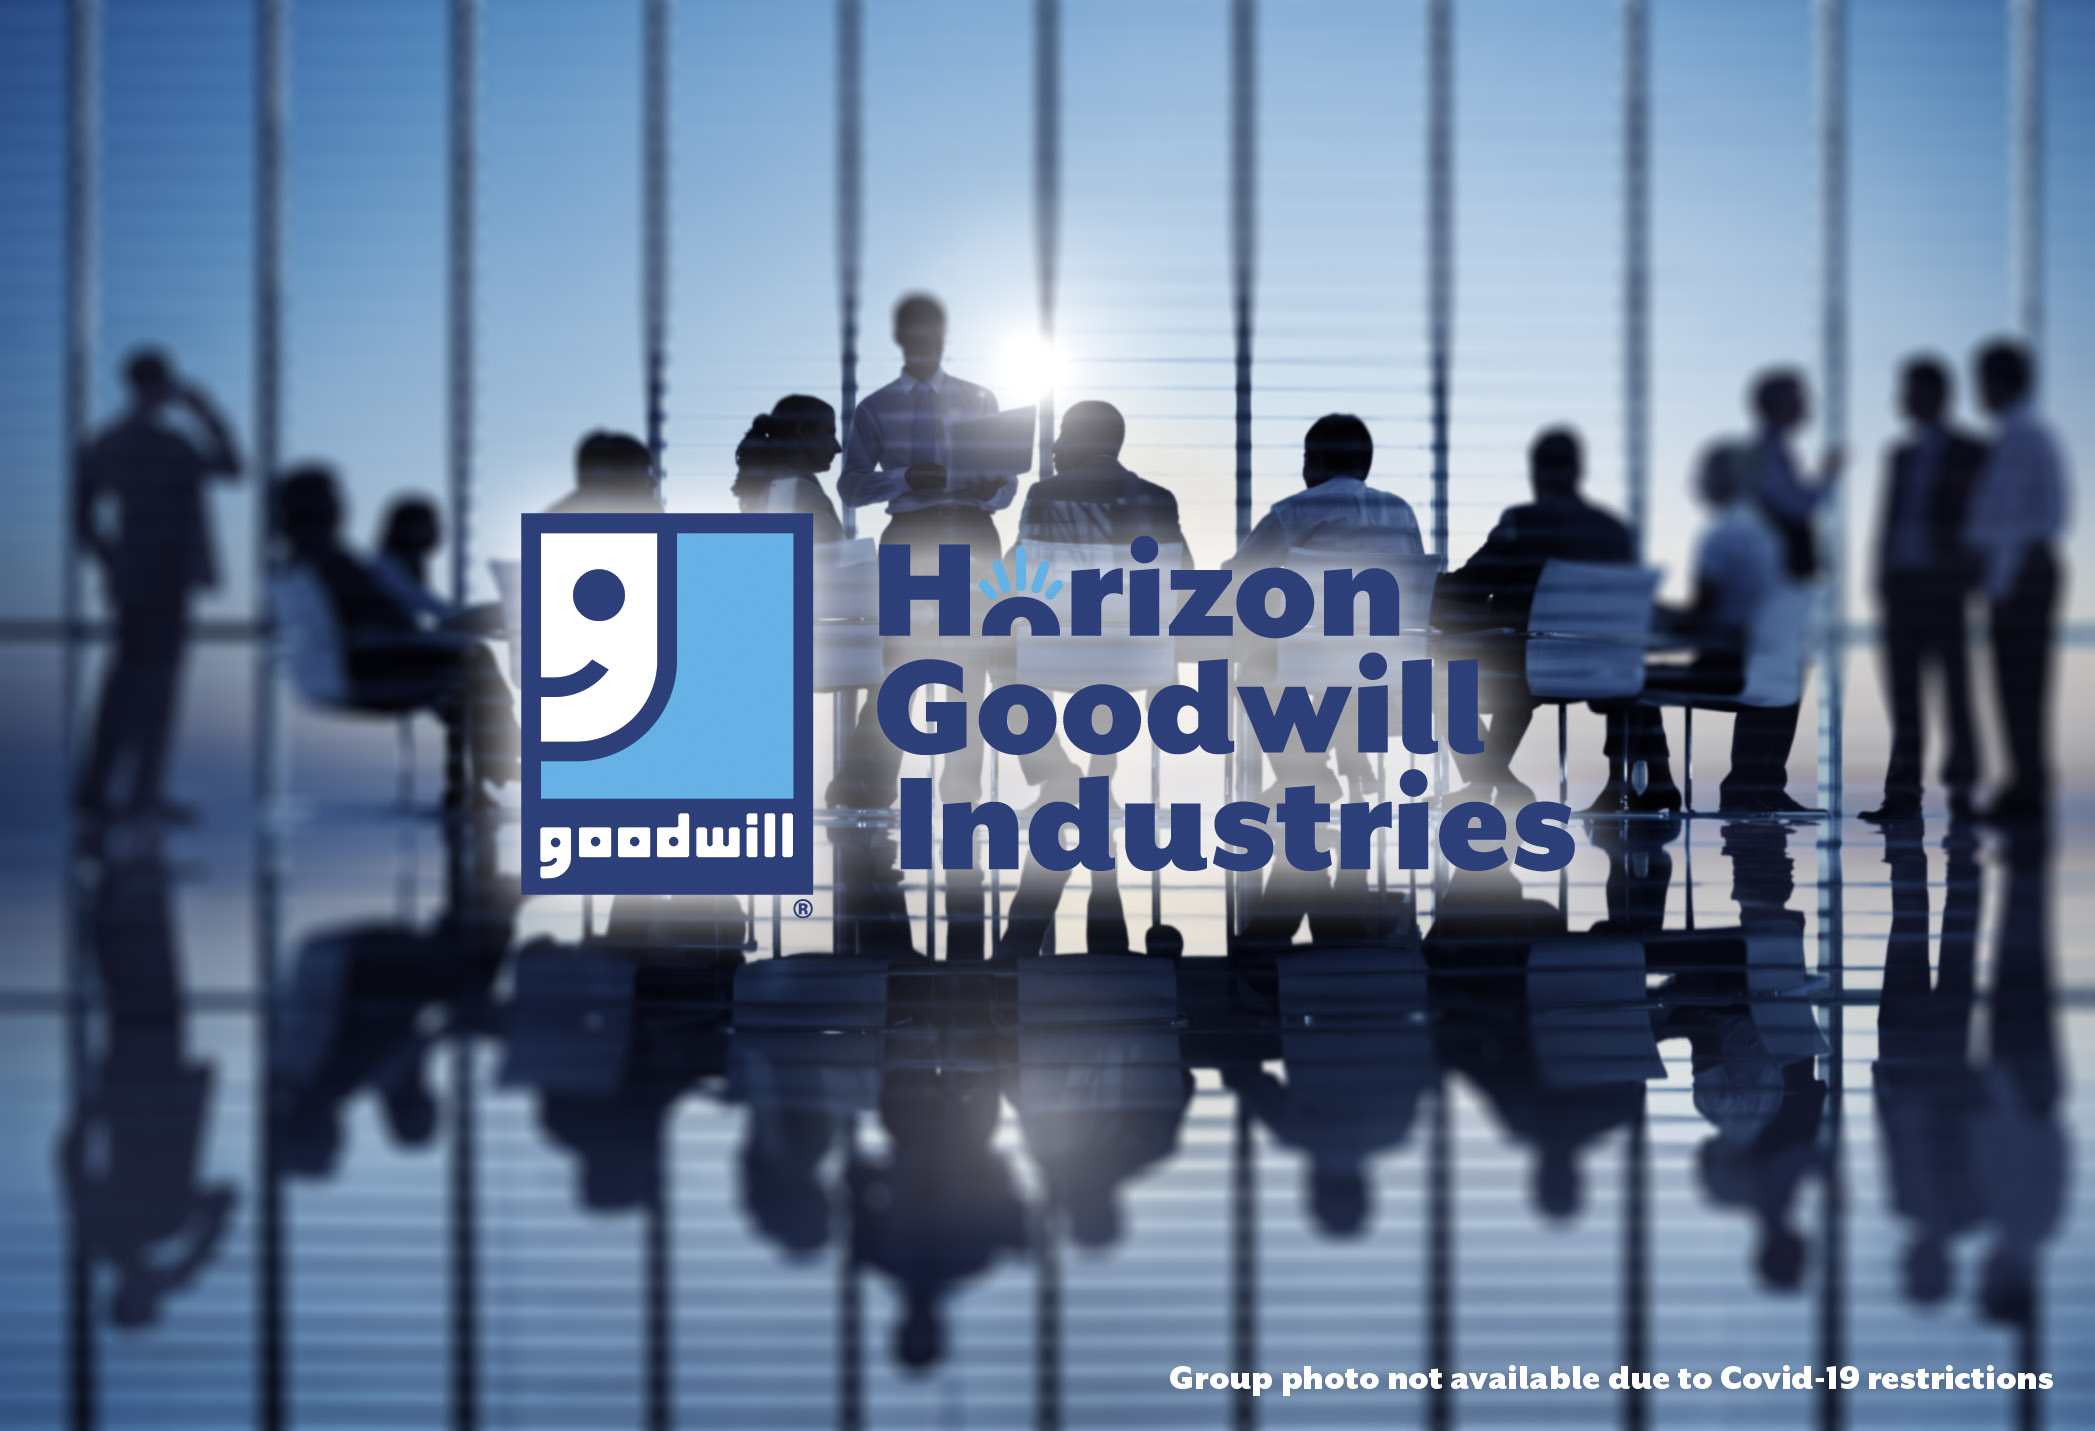 Horizon Goodwill Names 2021 Officers and Addition of Two New Board Members